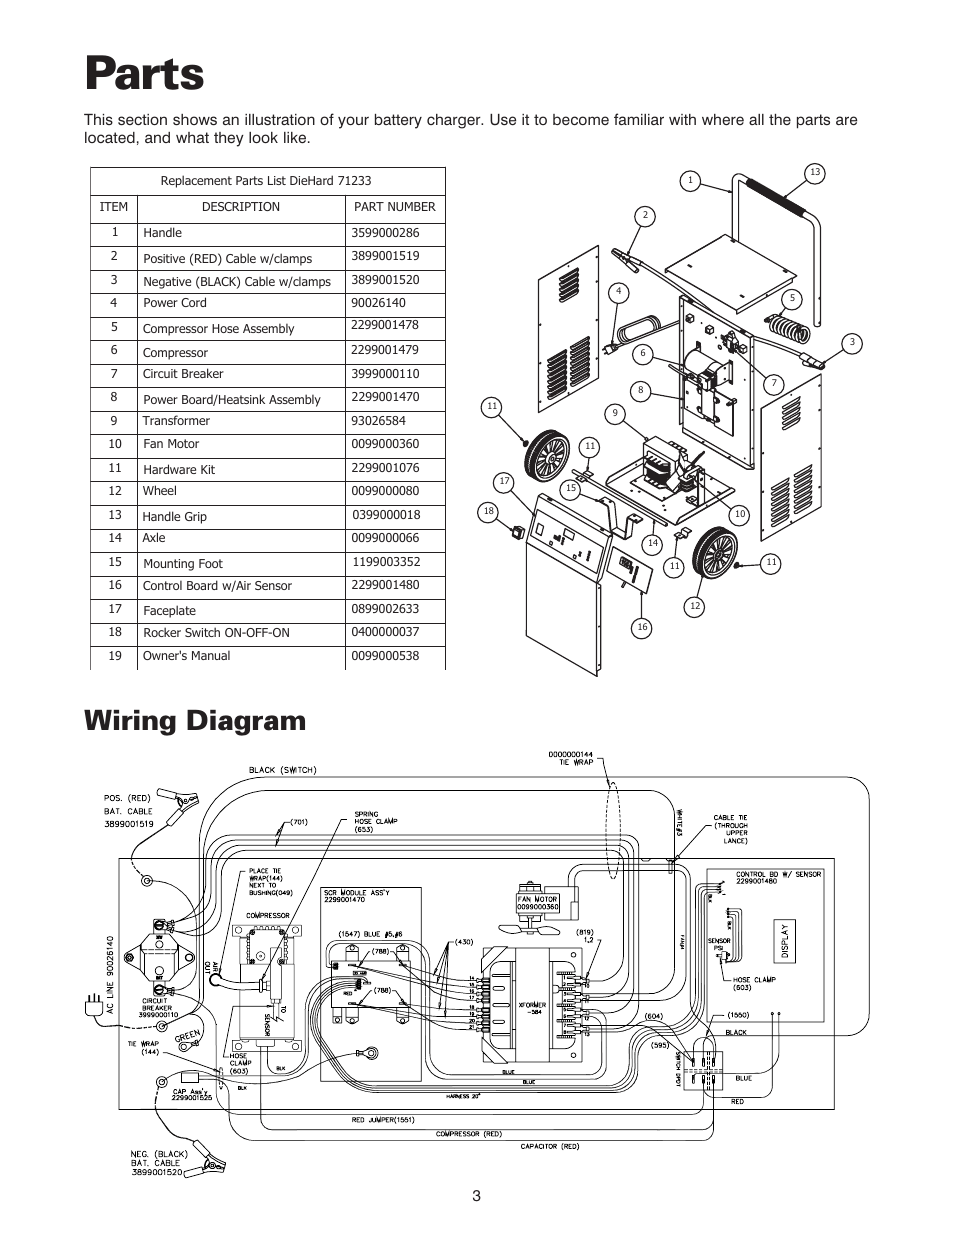 User's manual of Marine Stereo Wiring Diagram User's Guide